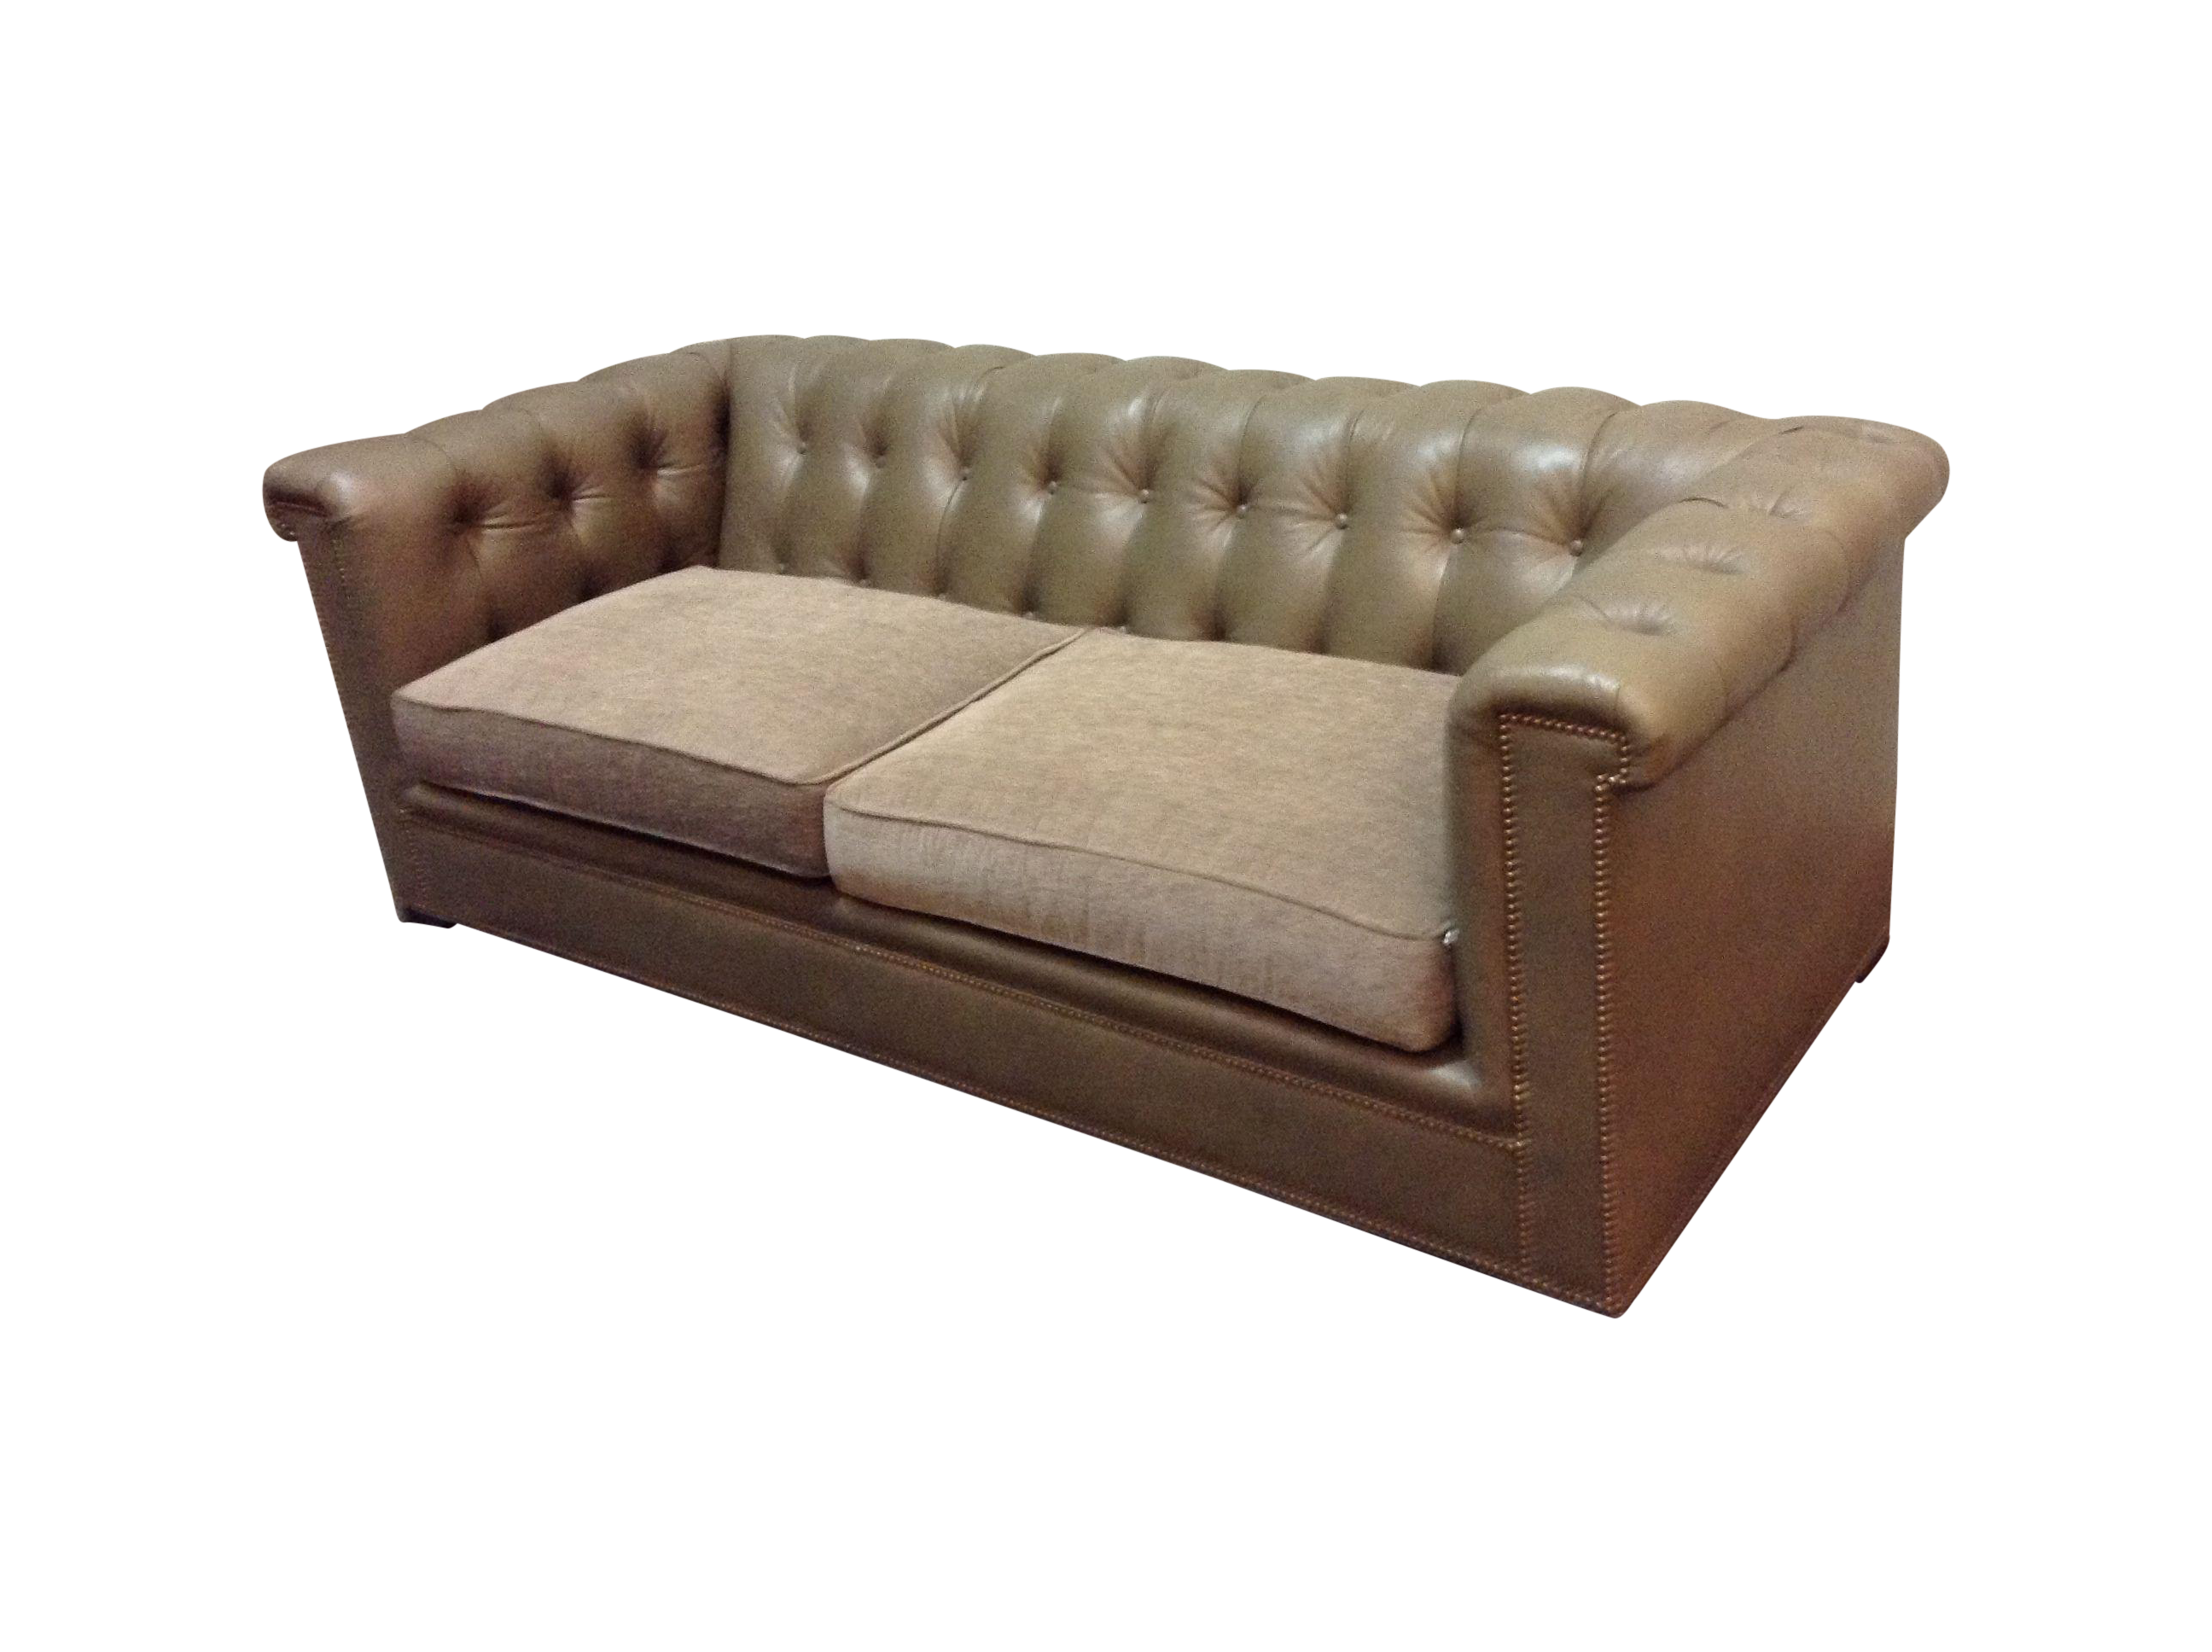 Hickory Chair Kent Tufted Leather Sofa on